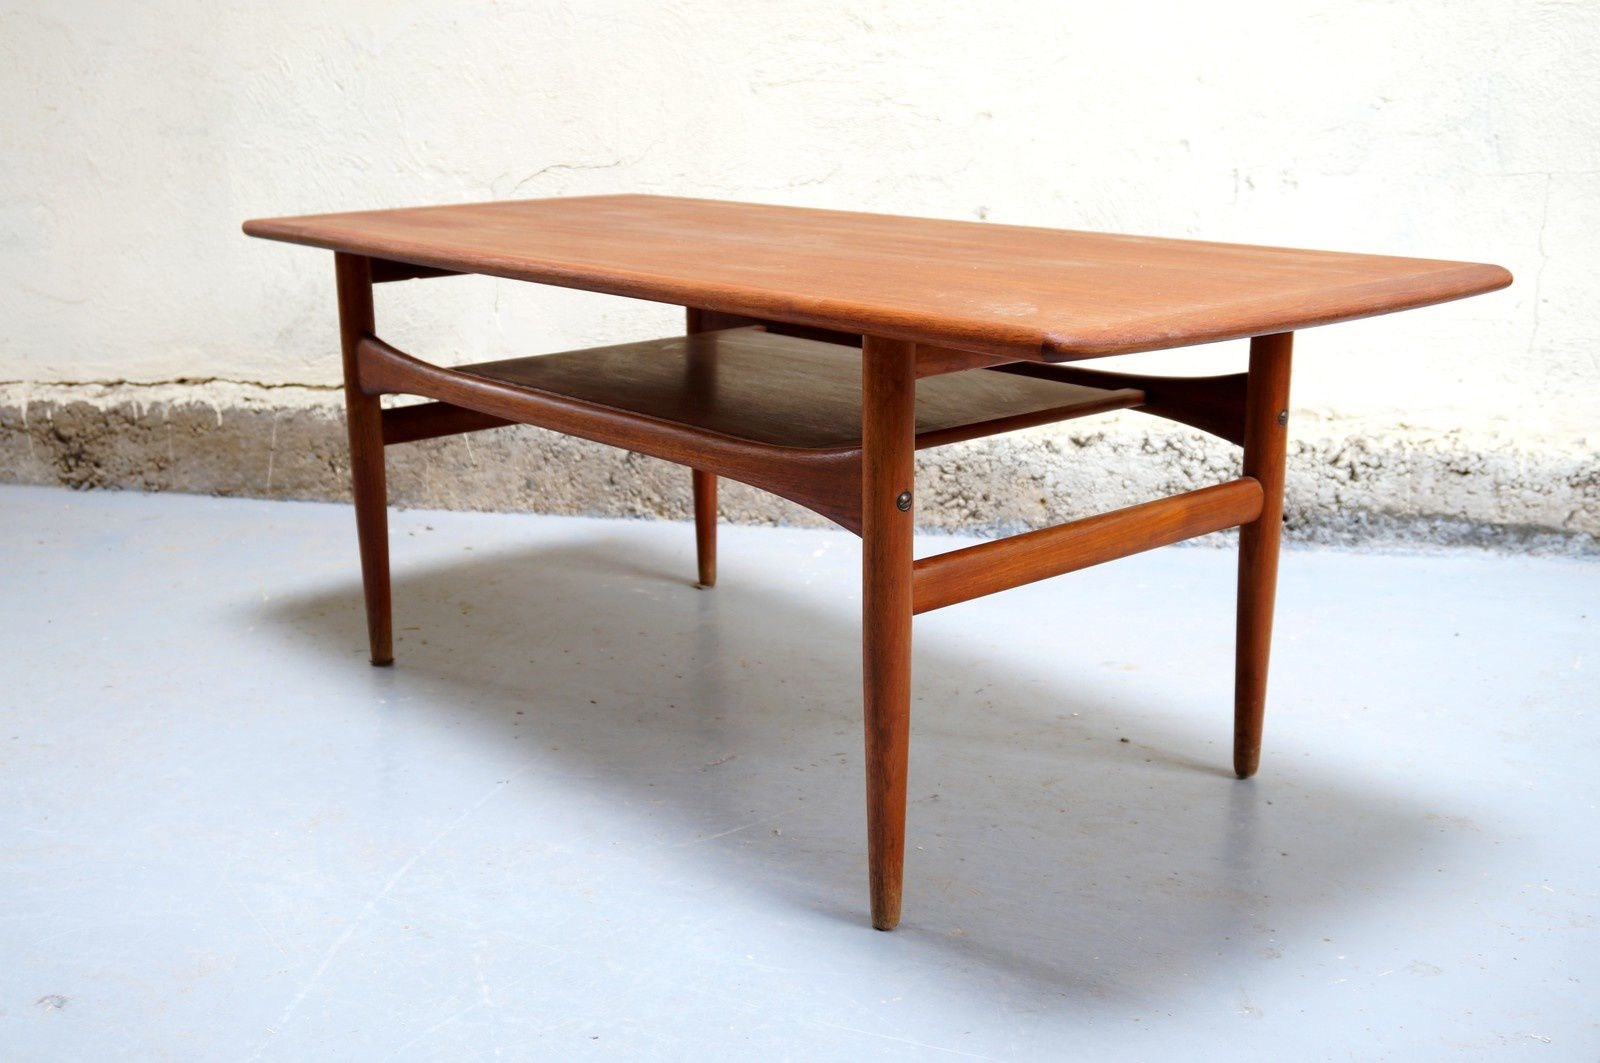 Table basse scandinave arrebo mobler danois vintage danish for Table basse scandinave pinterest